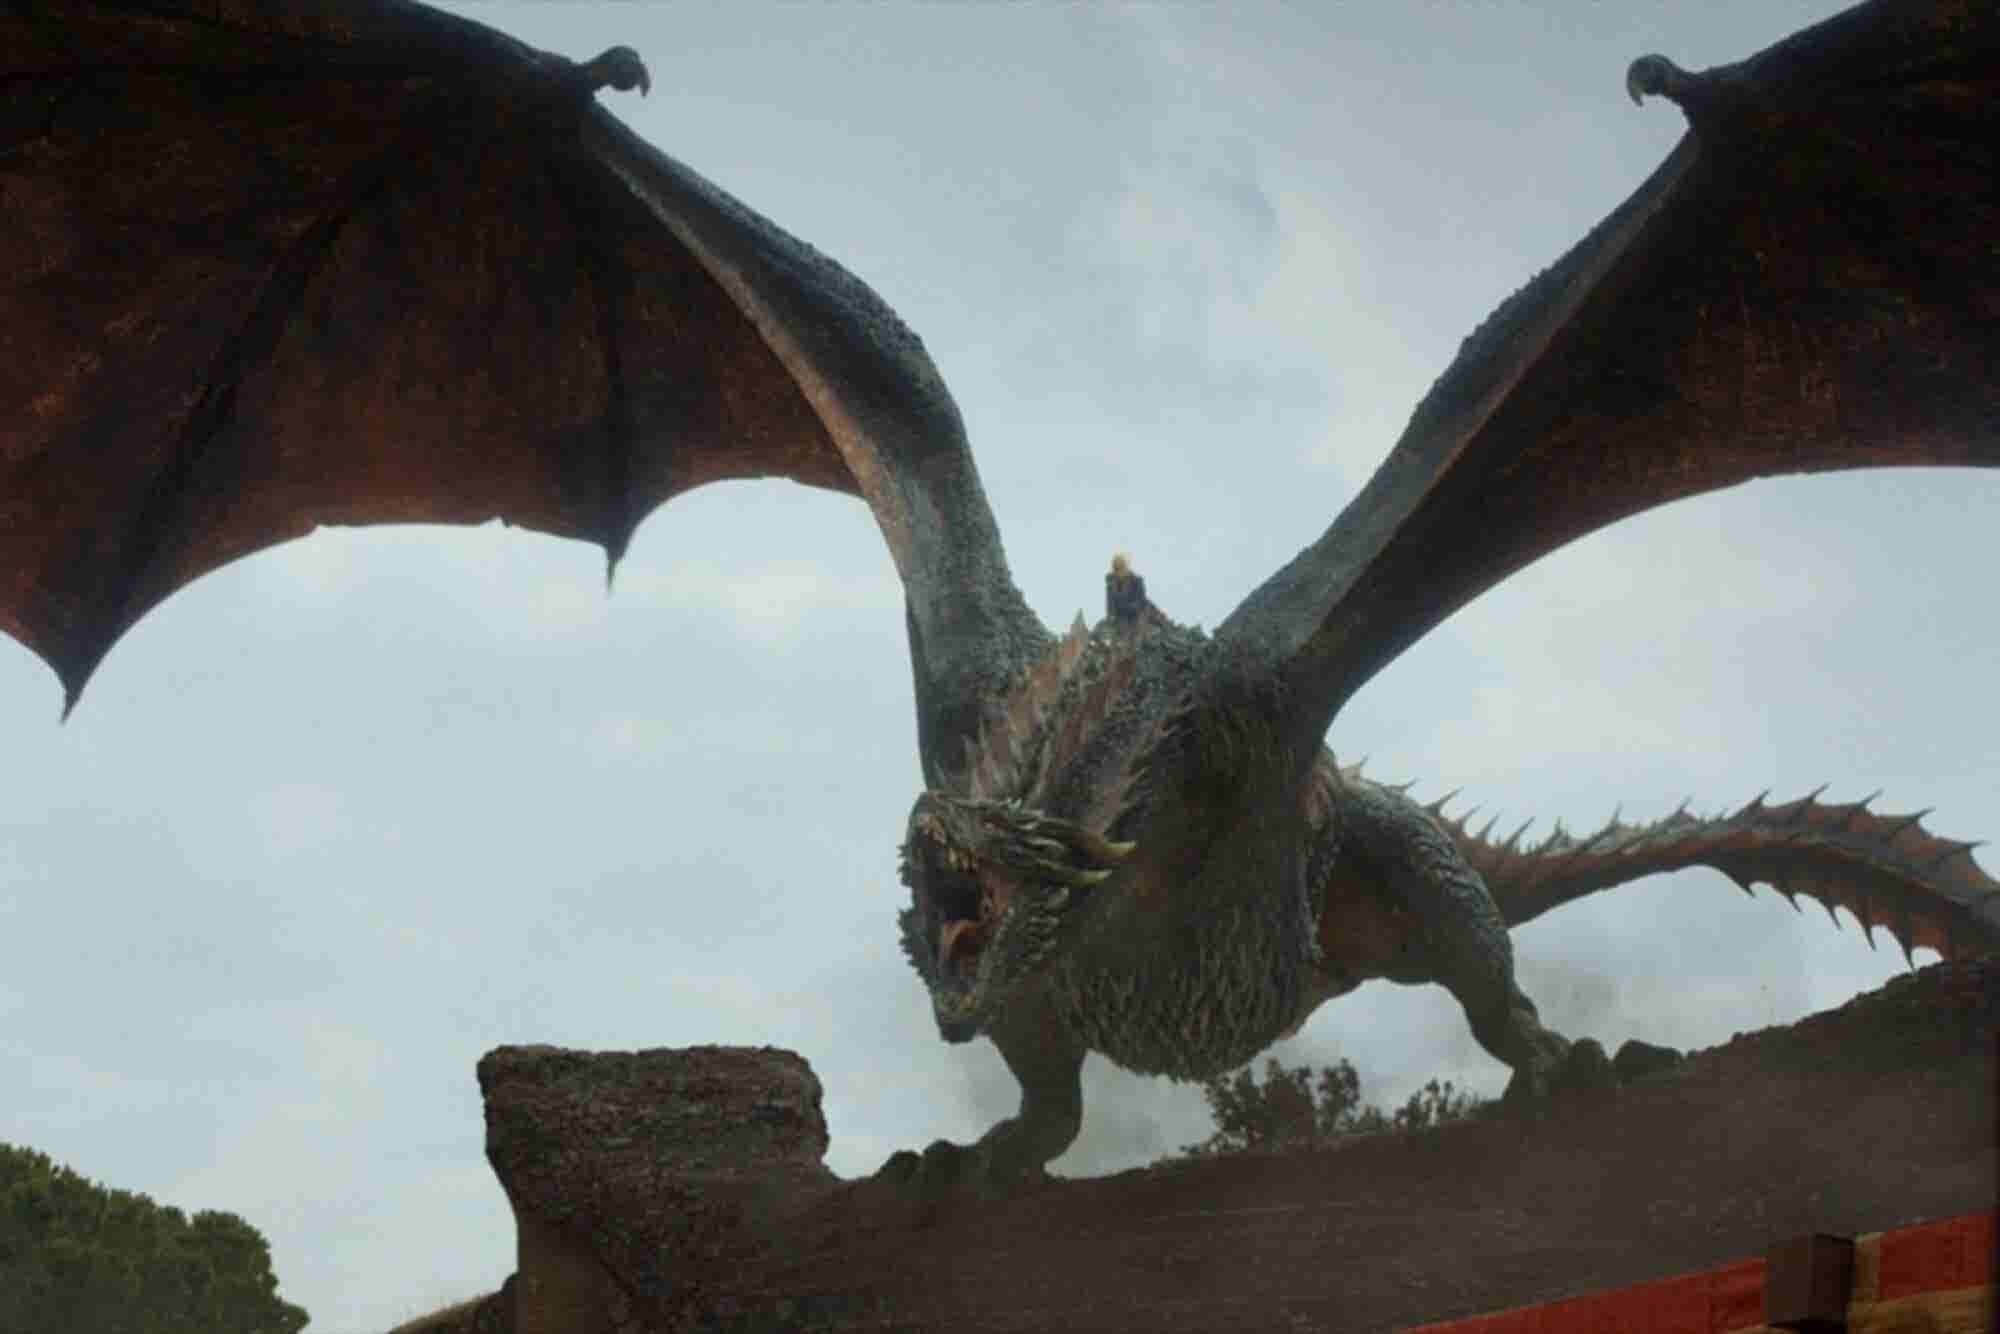 5 Reasons 'Game of Thrones' Fans Didn't Respond to the HBO Hack